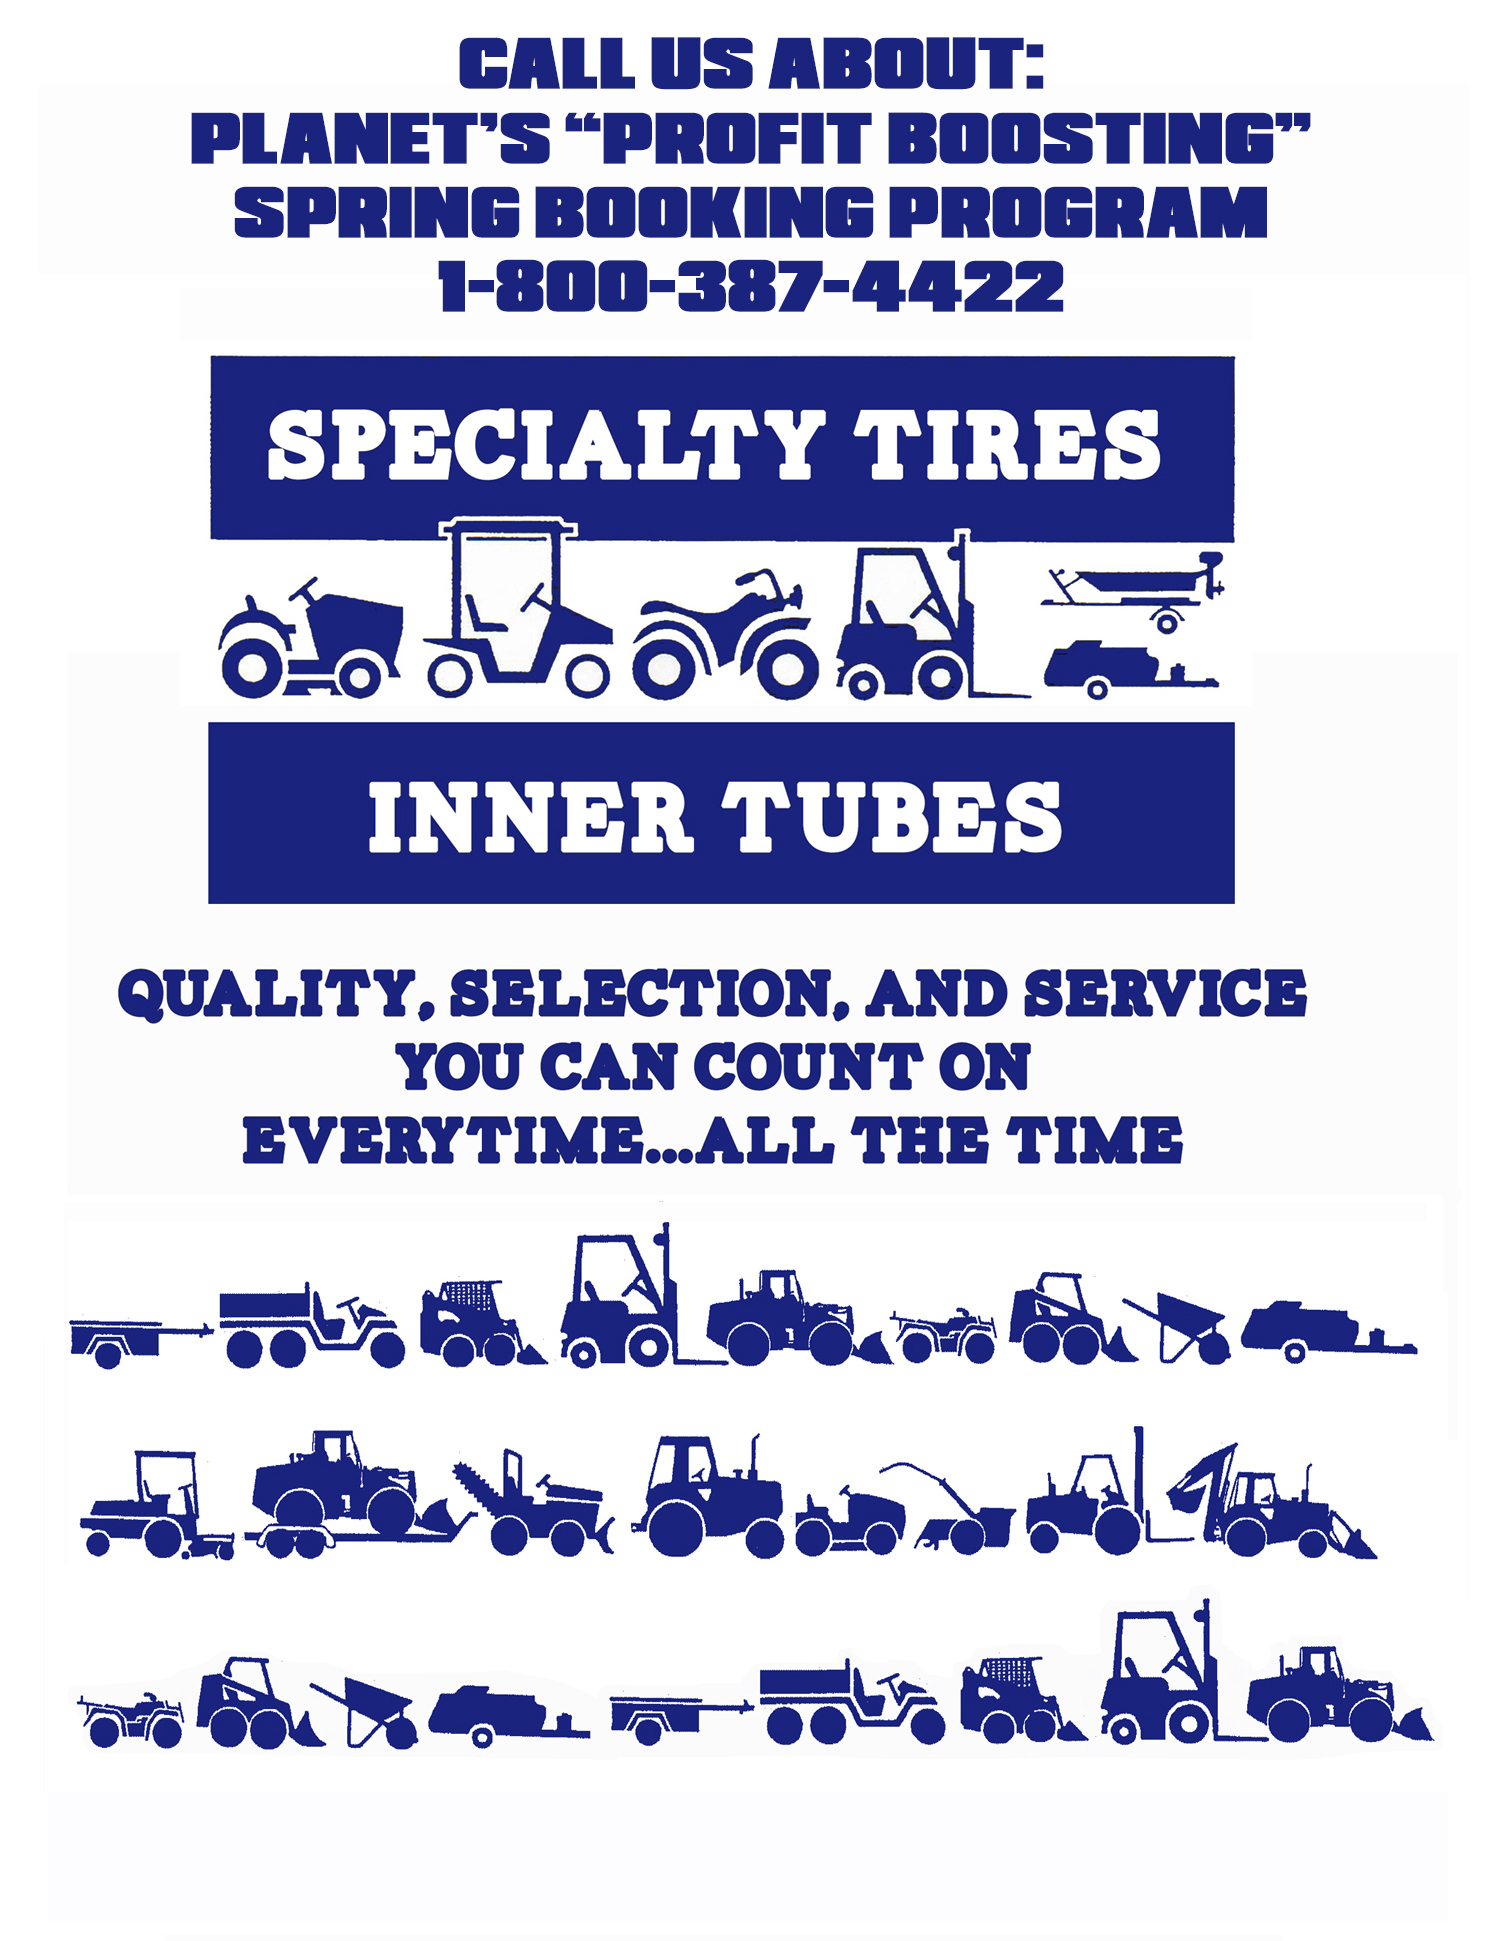 Specialty Tires - A.T.V.